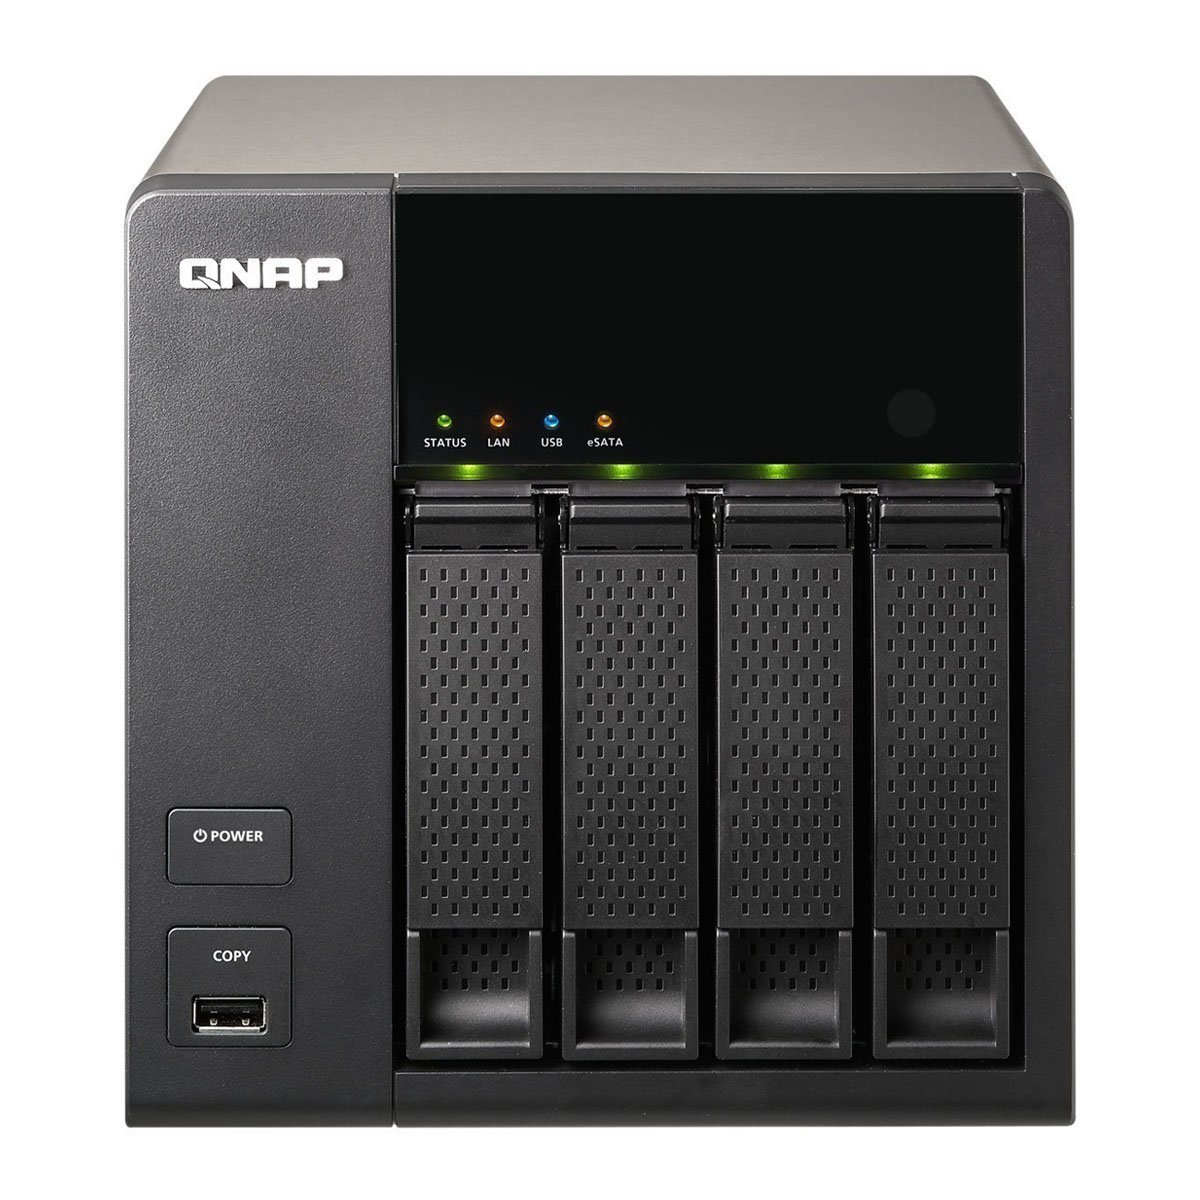 QNAP TS-420 4-bay Personal Cloud NAS, DLNA, Mobile App, iSCSI Supported